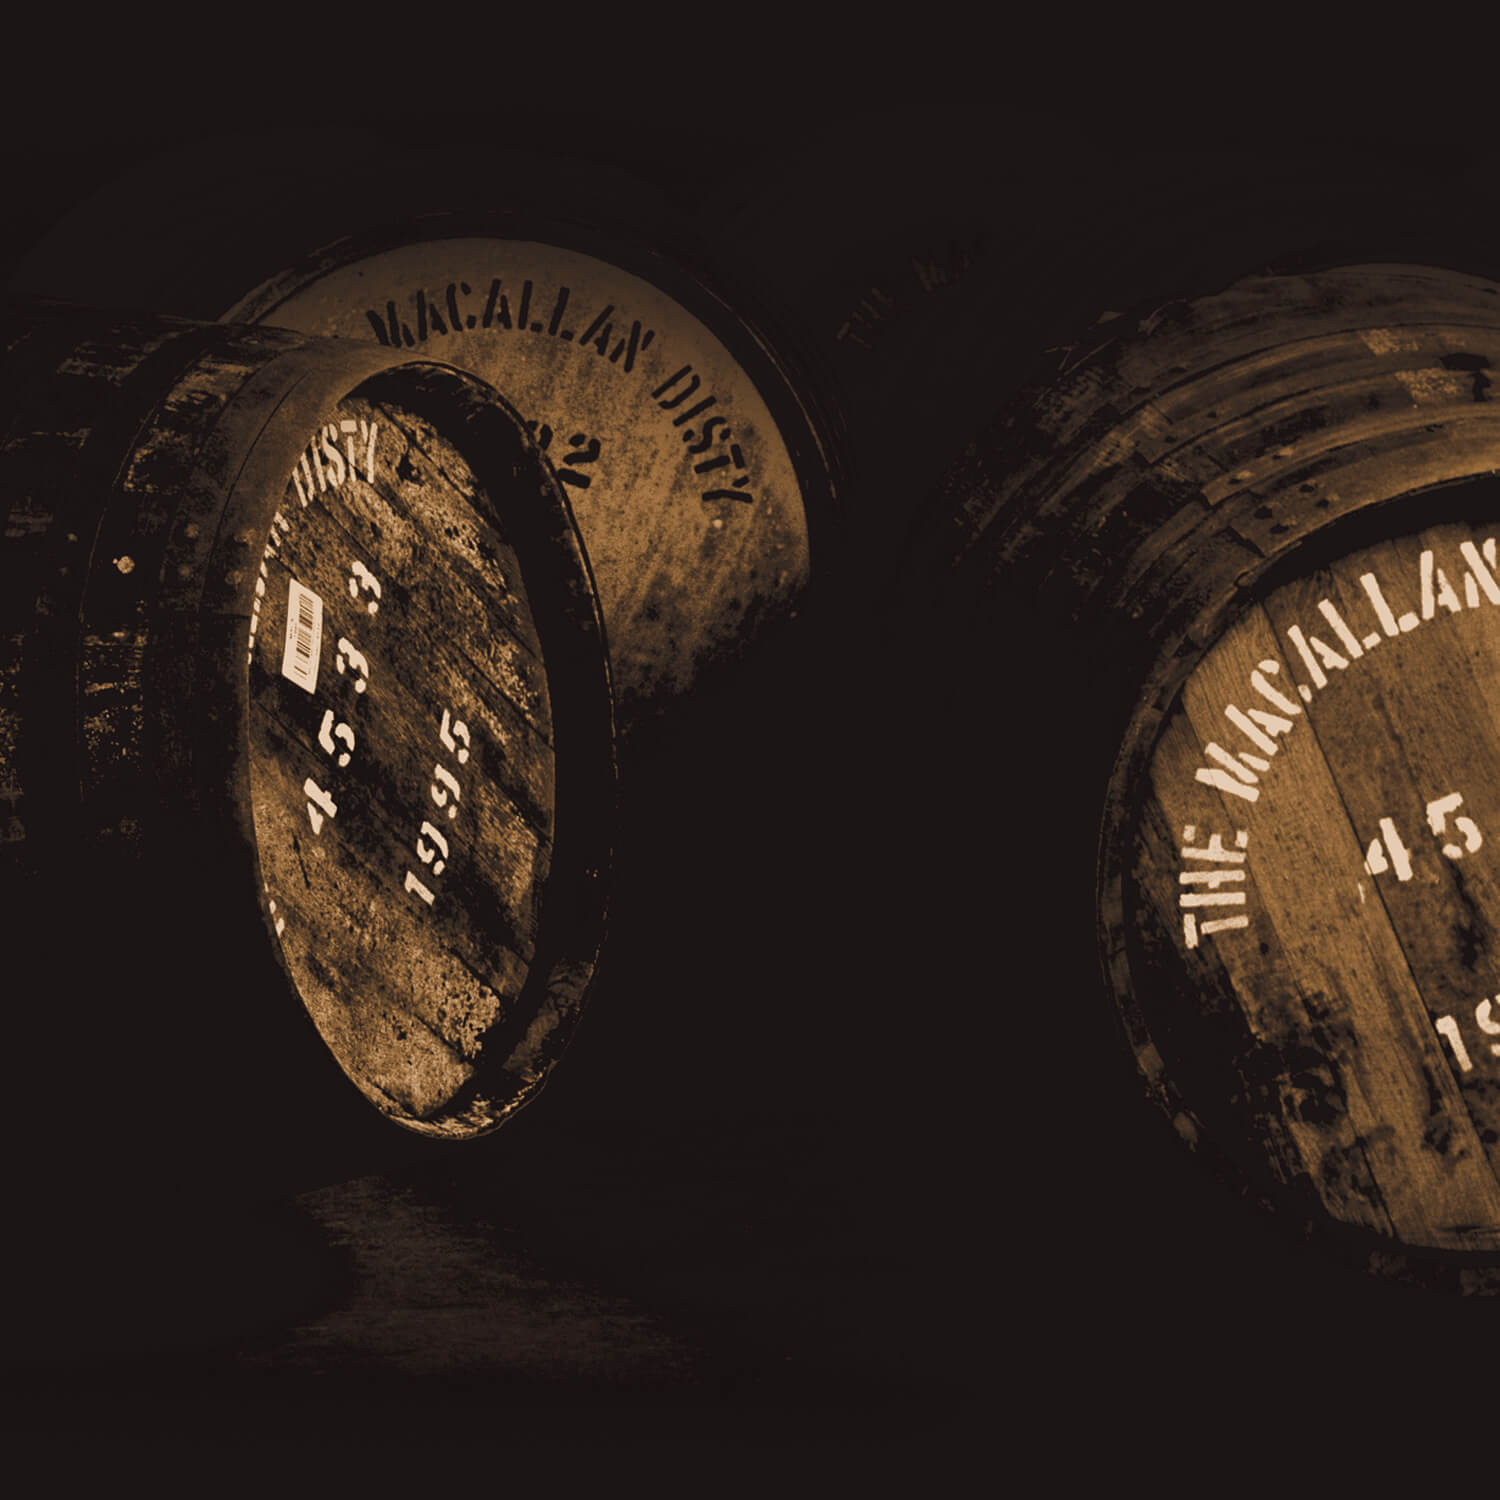 Macallan Distillery Casks